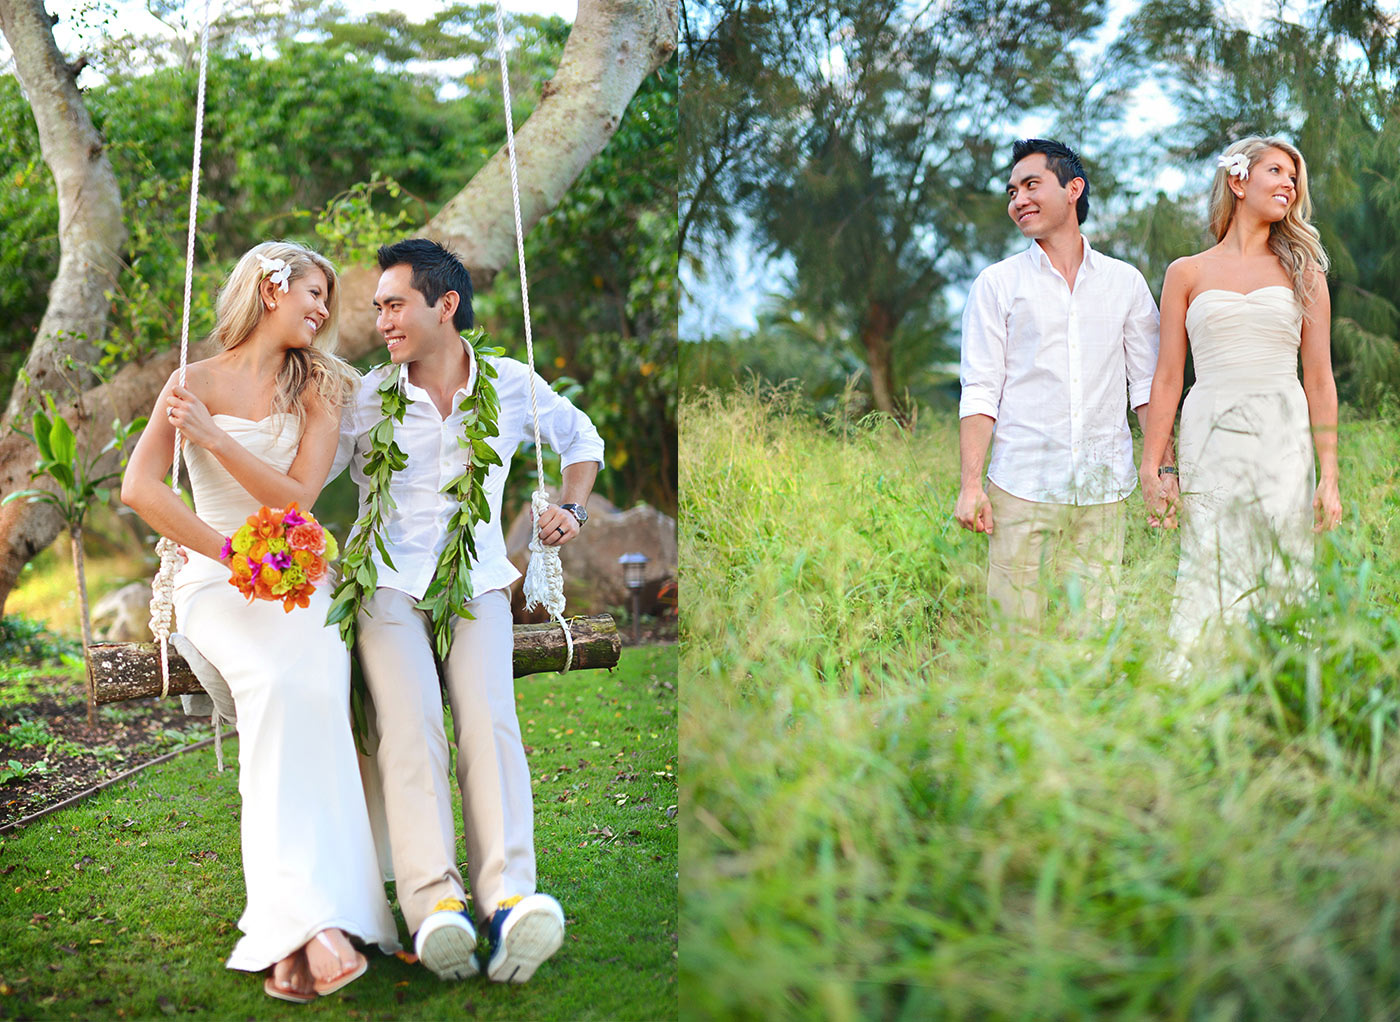 MAUI-wedding-photo-60.jpg